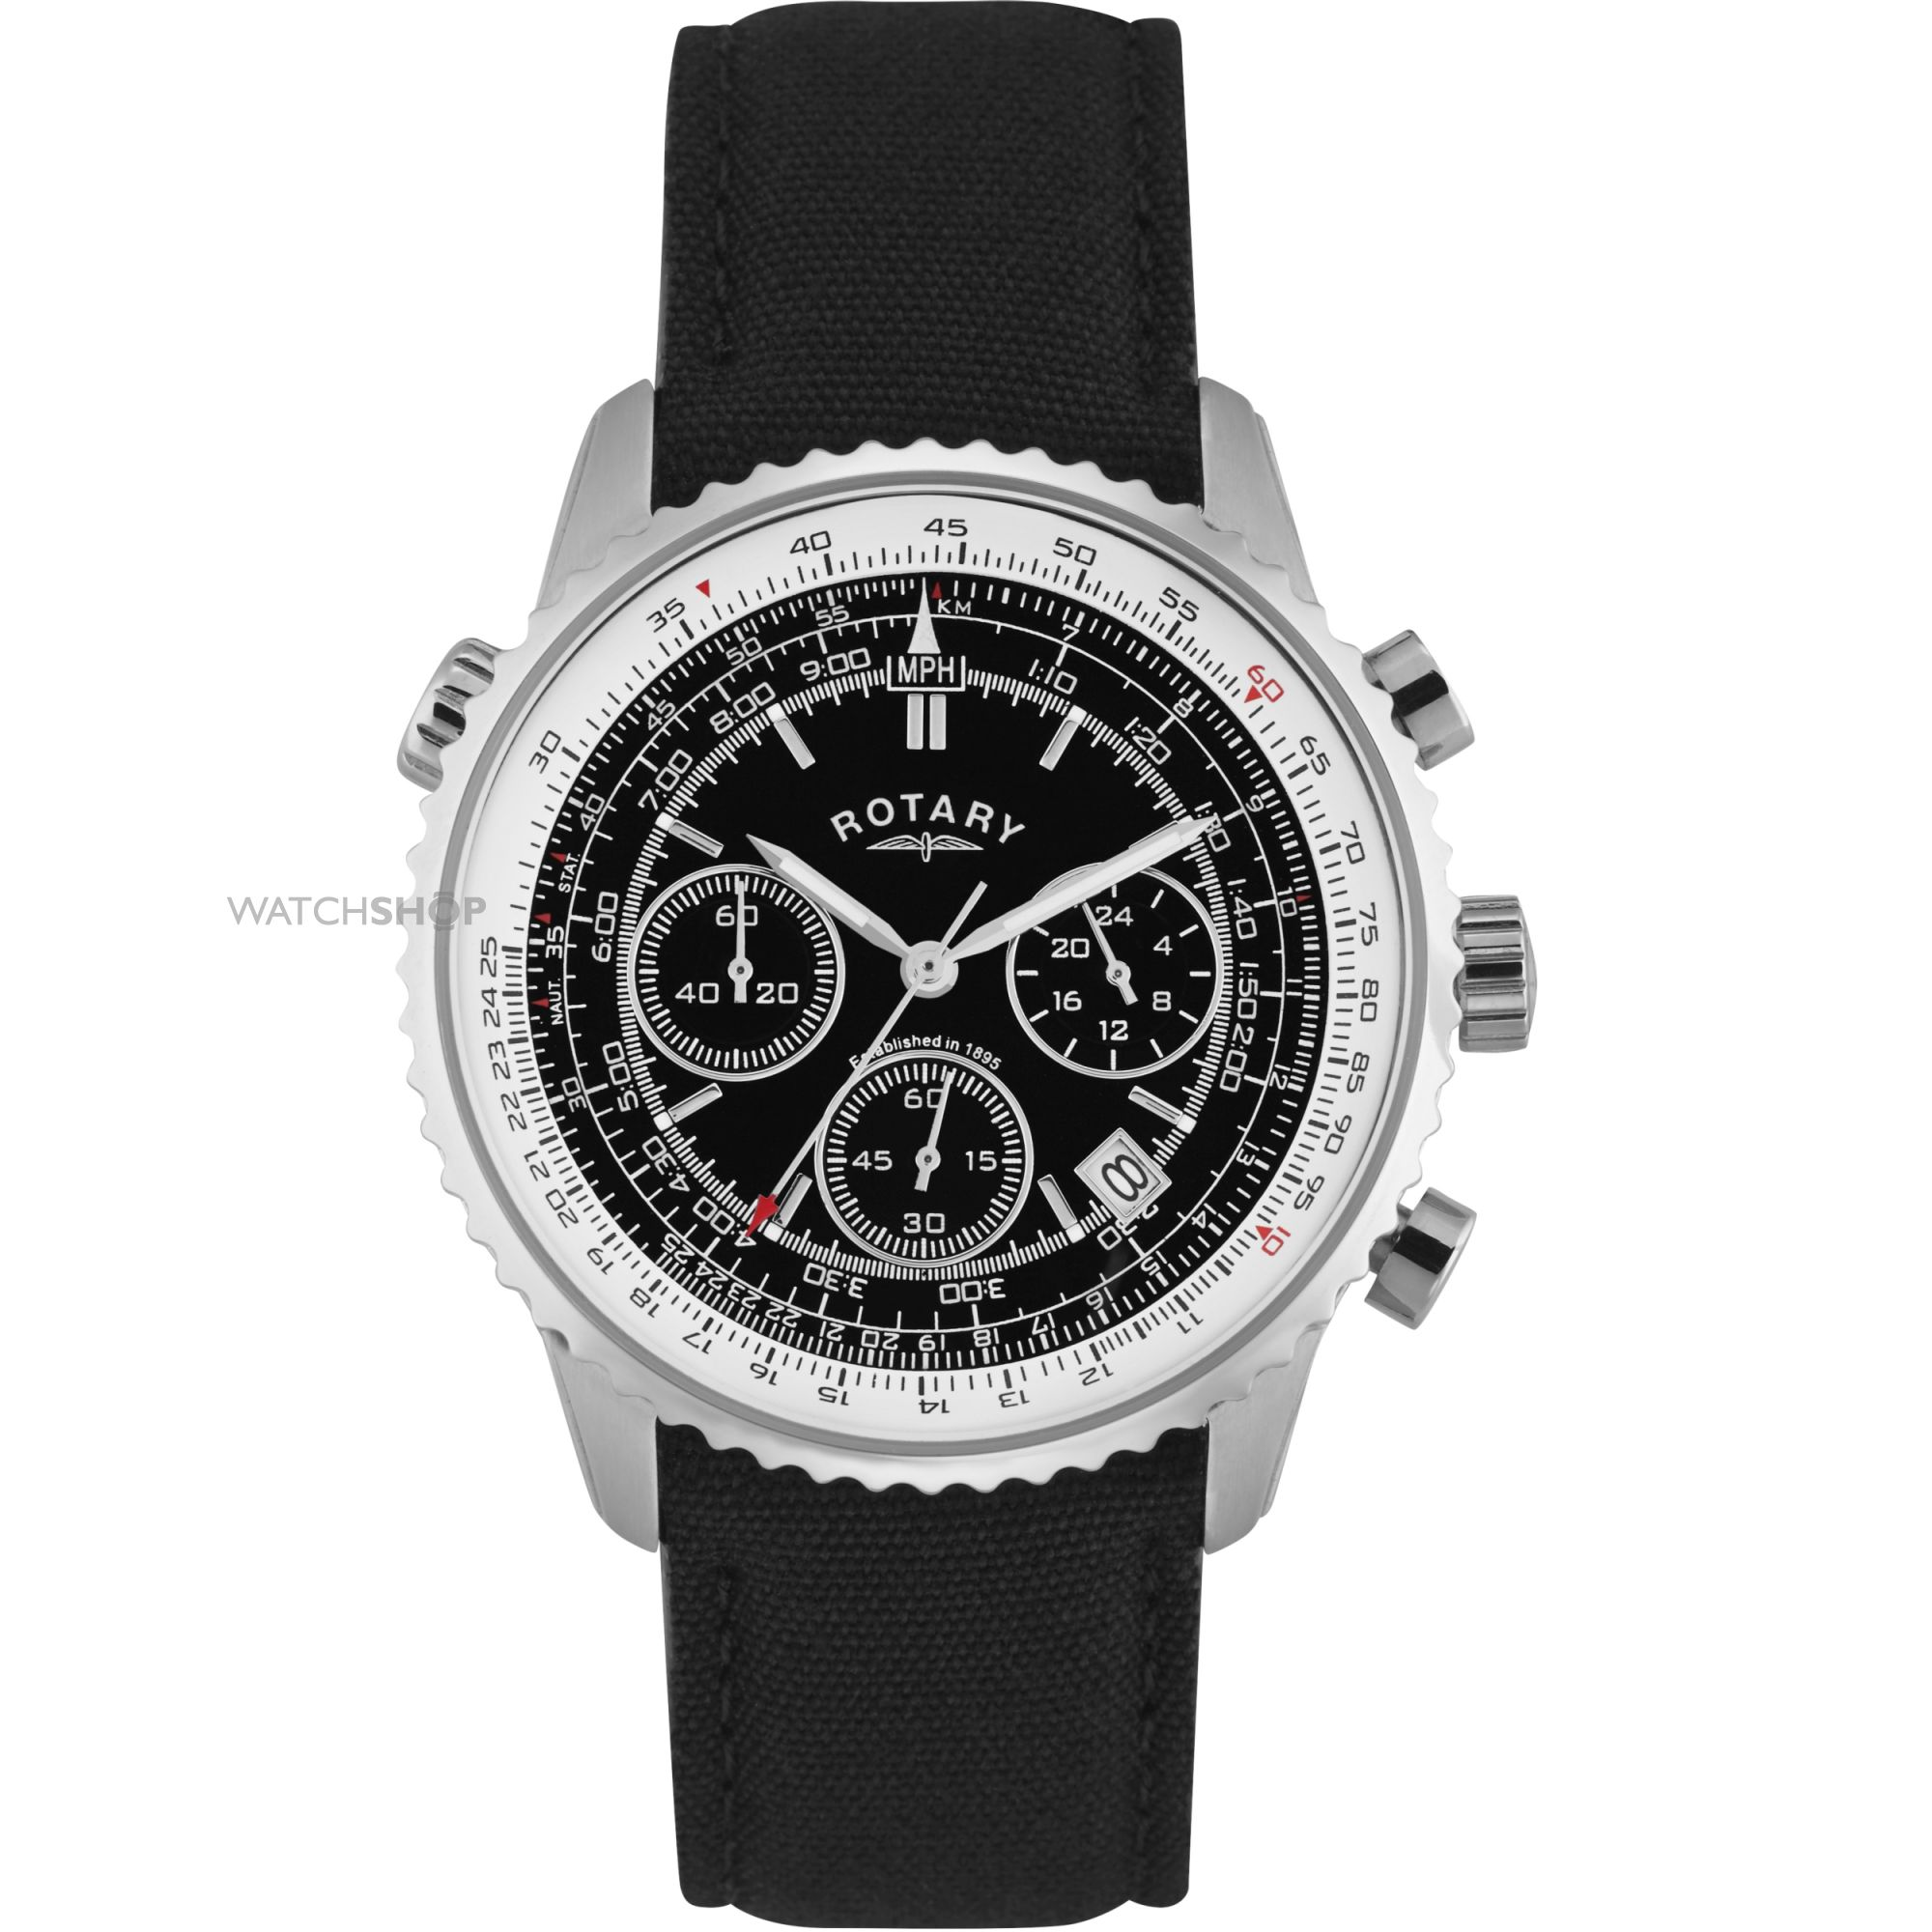 Mens Rotary Chronograph Watch GS00211 04Rotary Watches Price